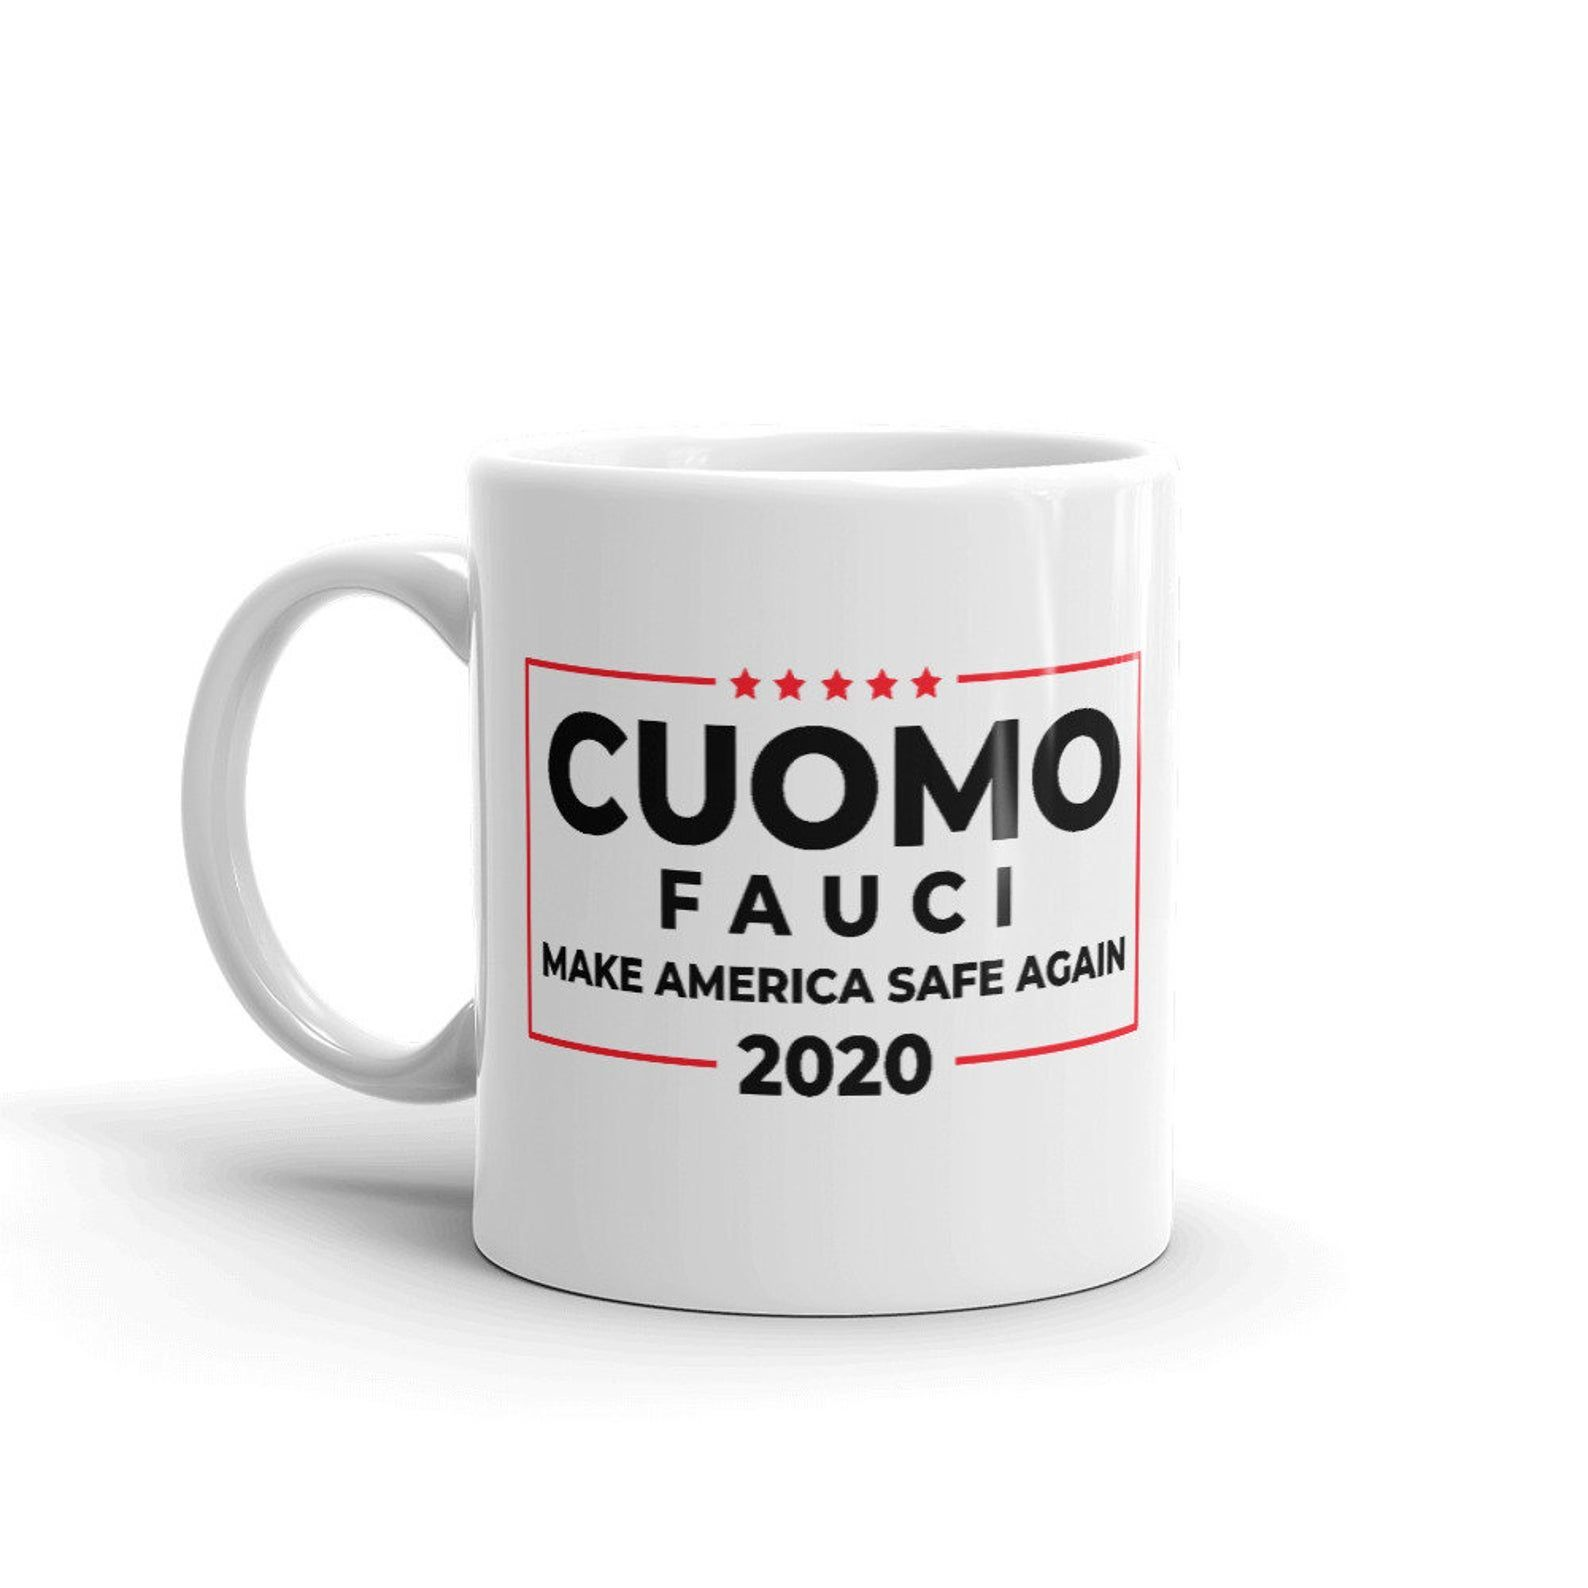 A Hilarious Governor Cuomo And Anthony Fauci Mug Funny Coffee Mugs Humor Hilarious Gift Ideas Cuomo Fauci In 2020 Funny Coffee Mugs Mugs Cute Coffee Mugs